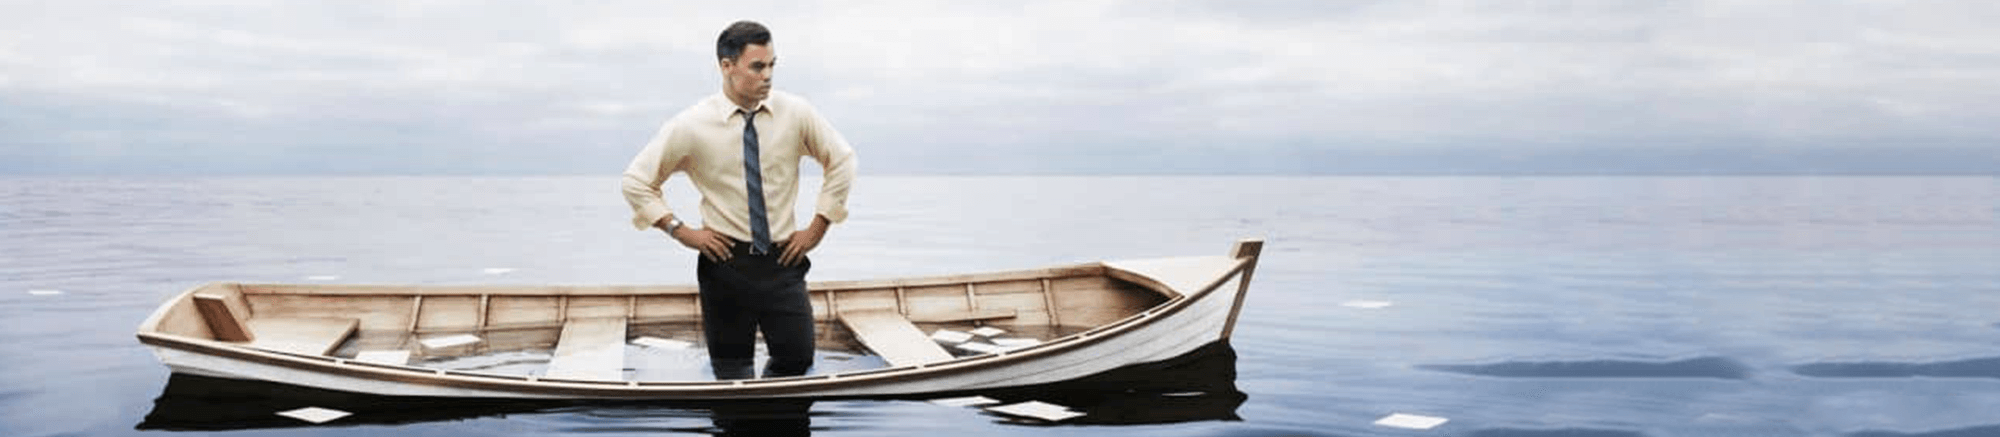 How to Stop Your Business From Sinking